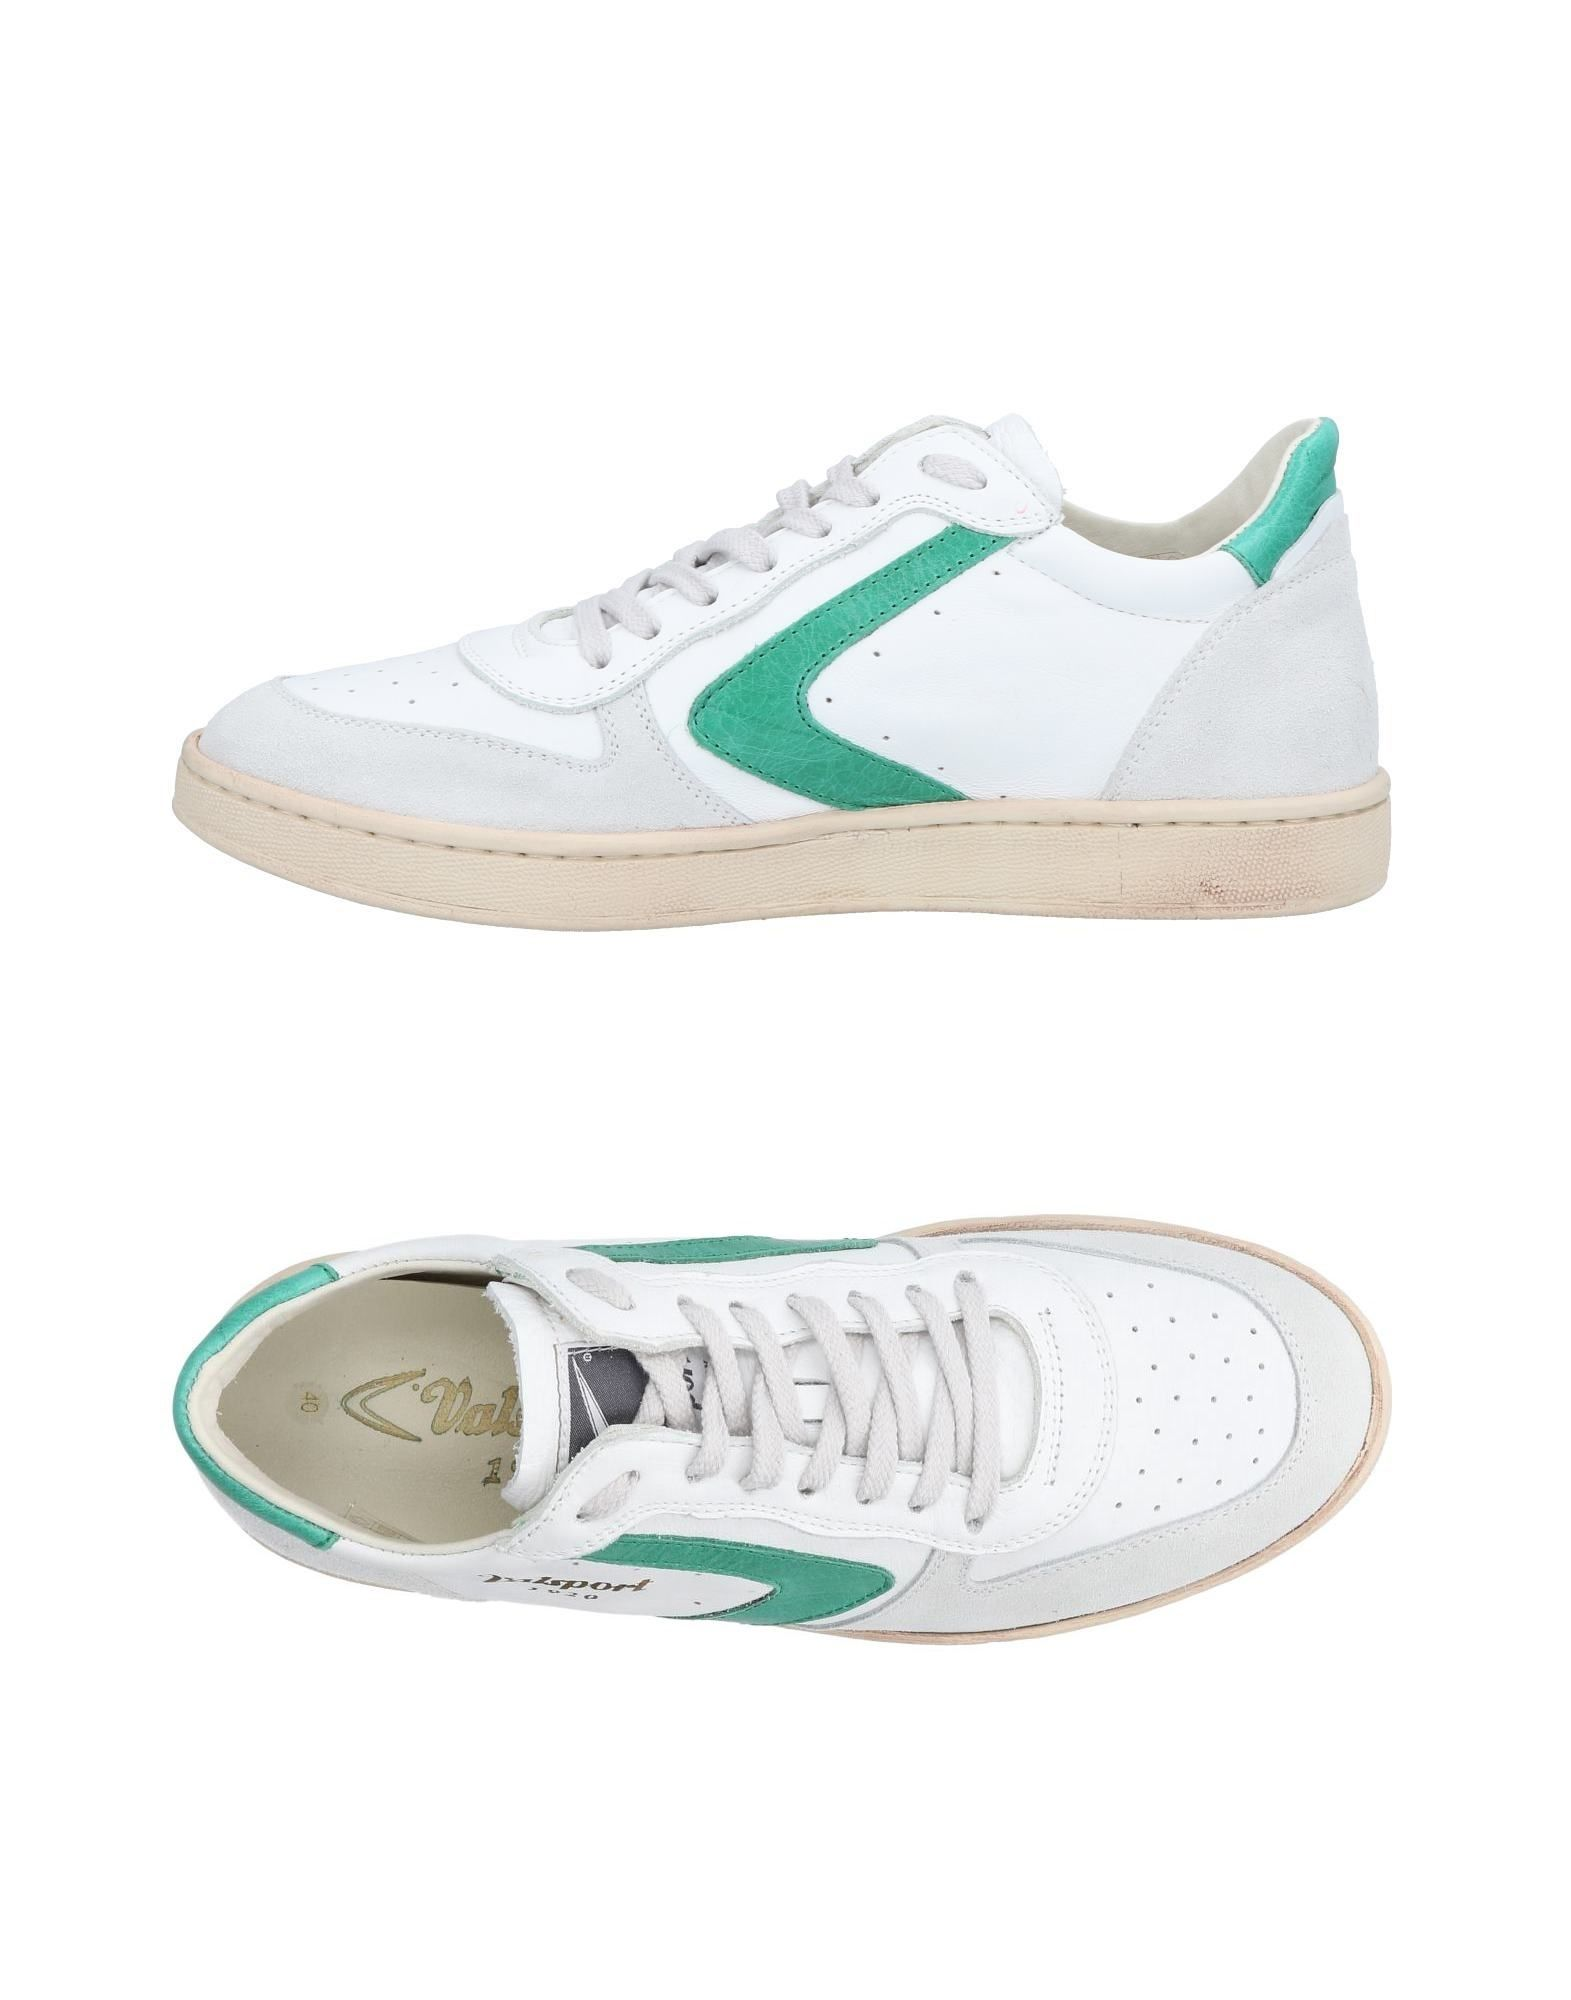 Sneakers Valsport Donna - Acquista online su